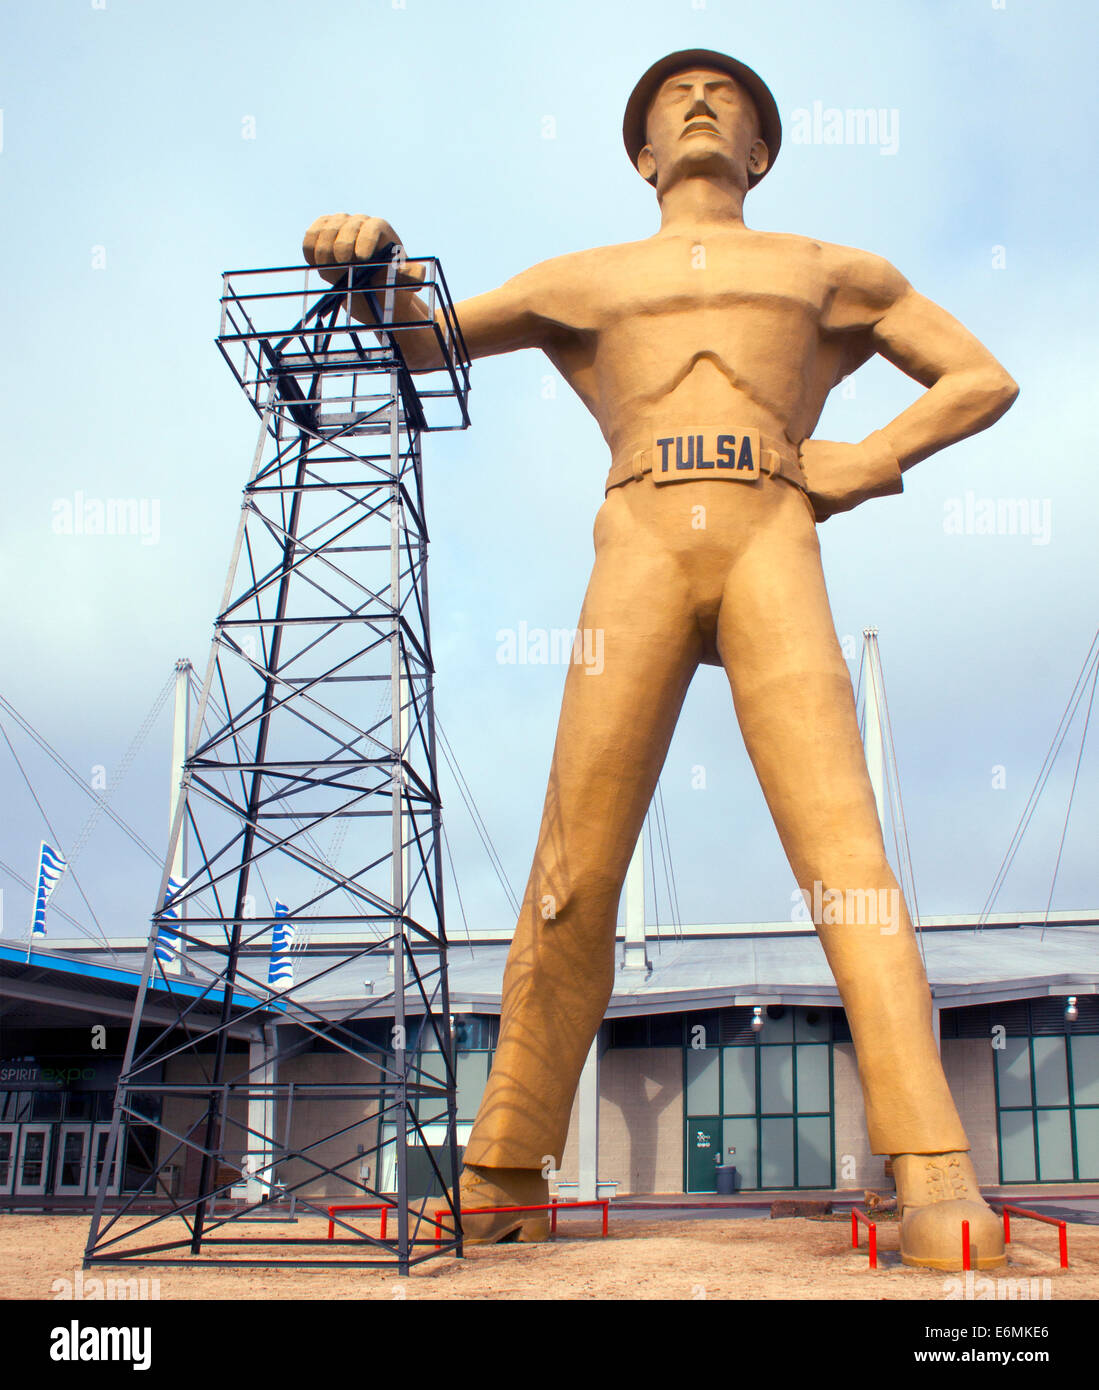 Giant Oil Driller Man Sculpture at the old Worlds Fairground in Tulsa Oklahoma - Stock Image